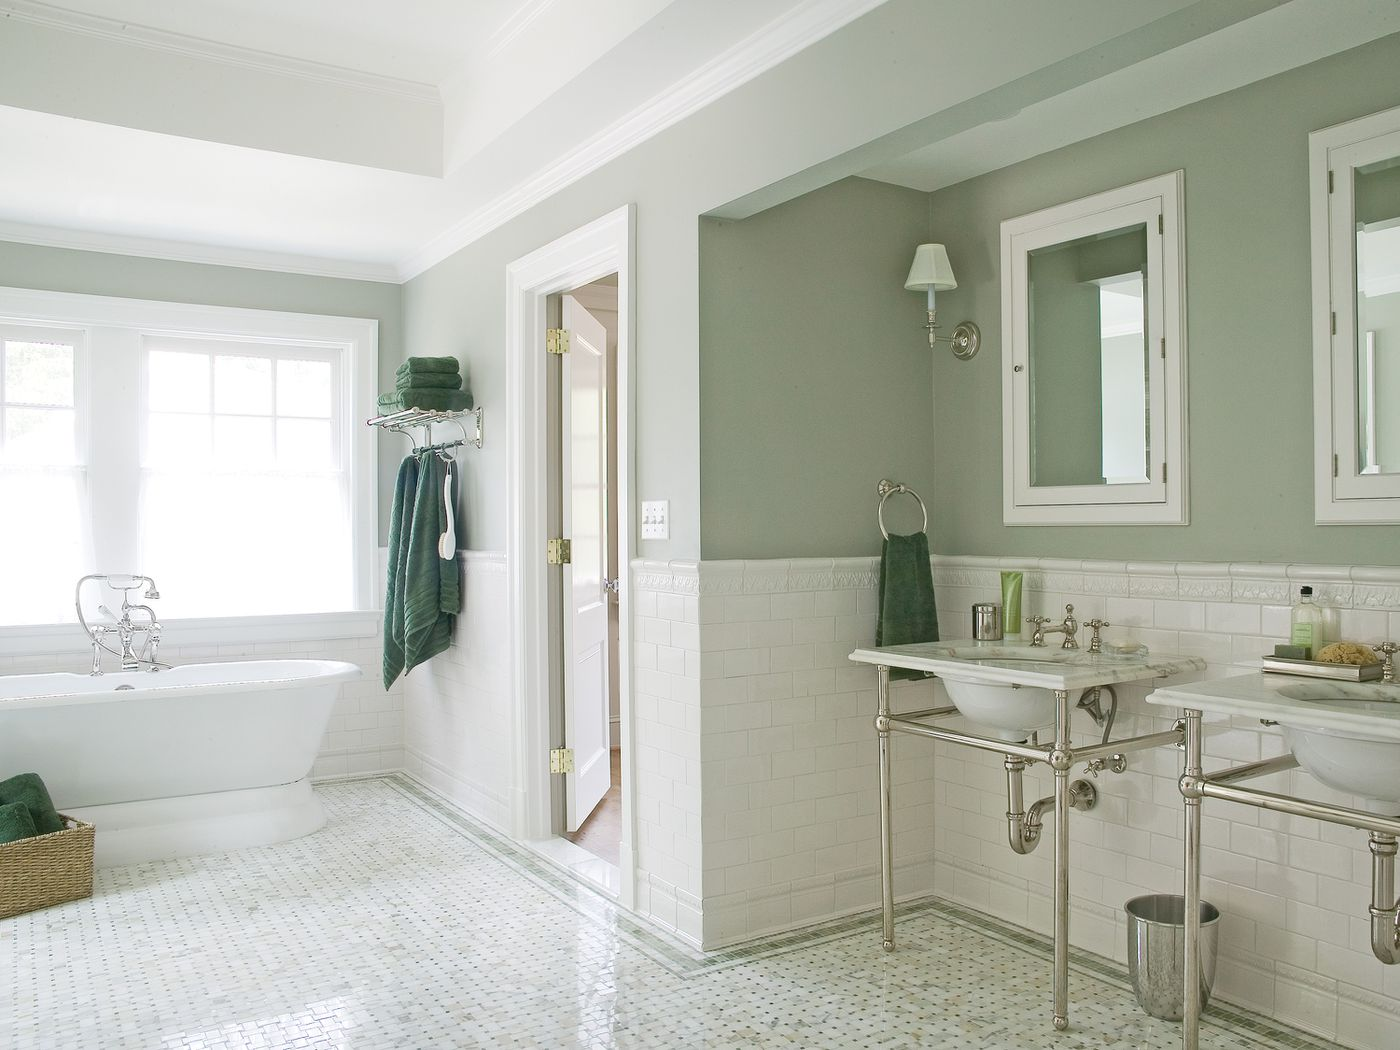 Vintage Bath At A Budget Price This Old House